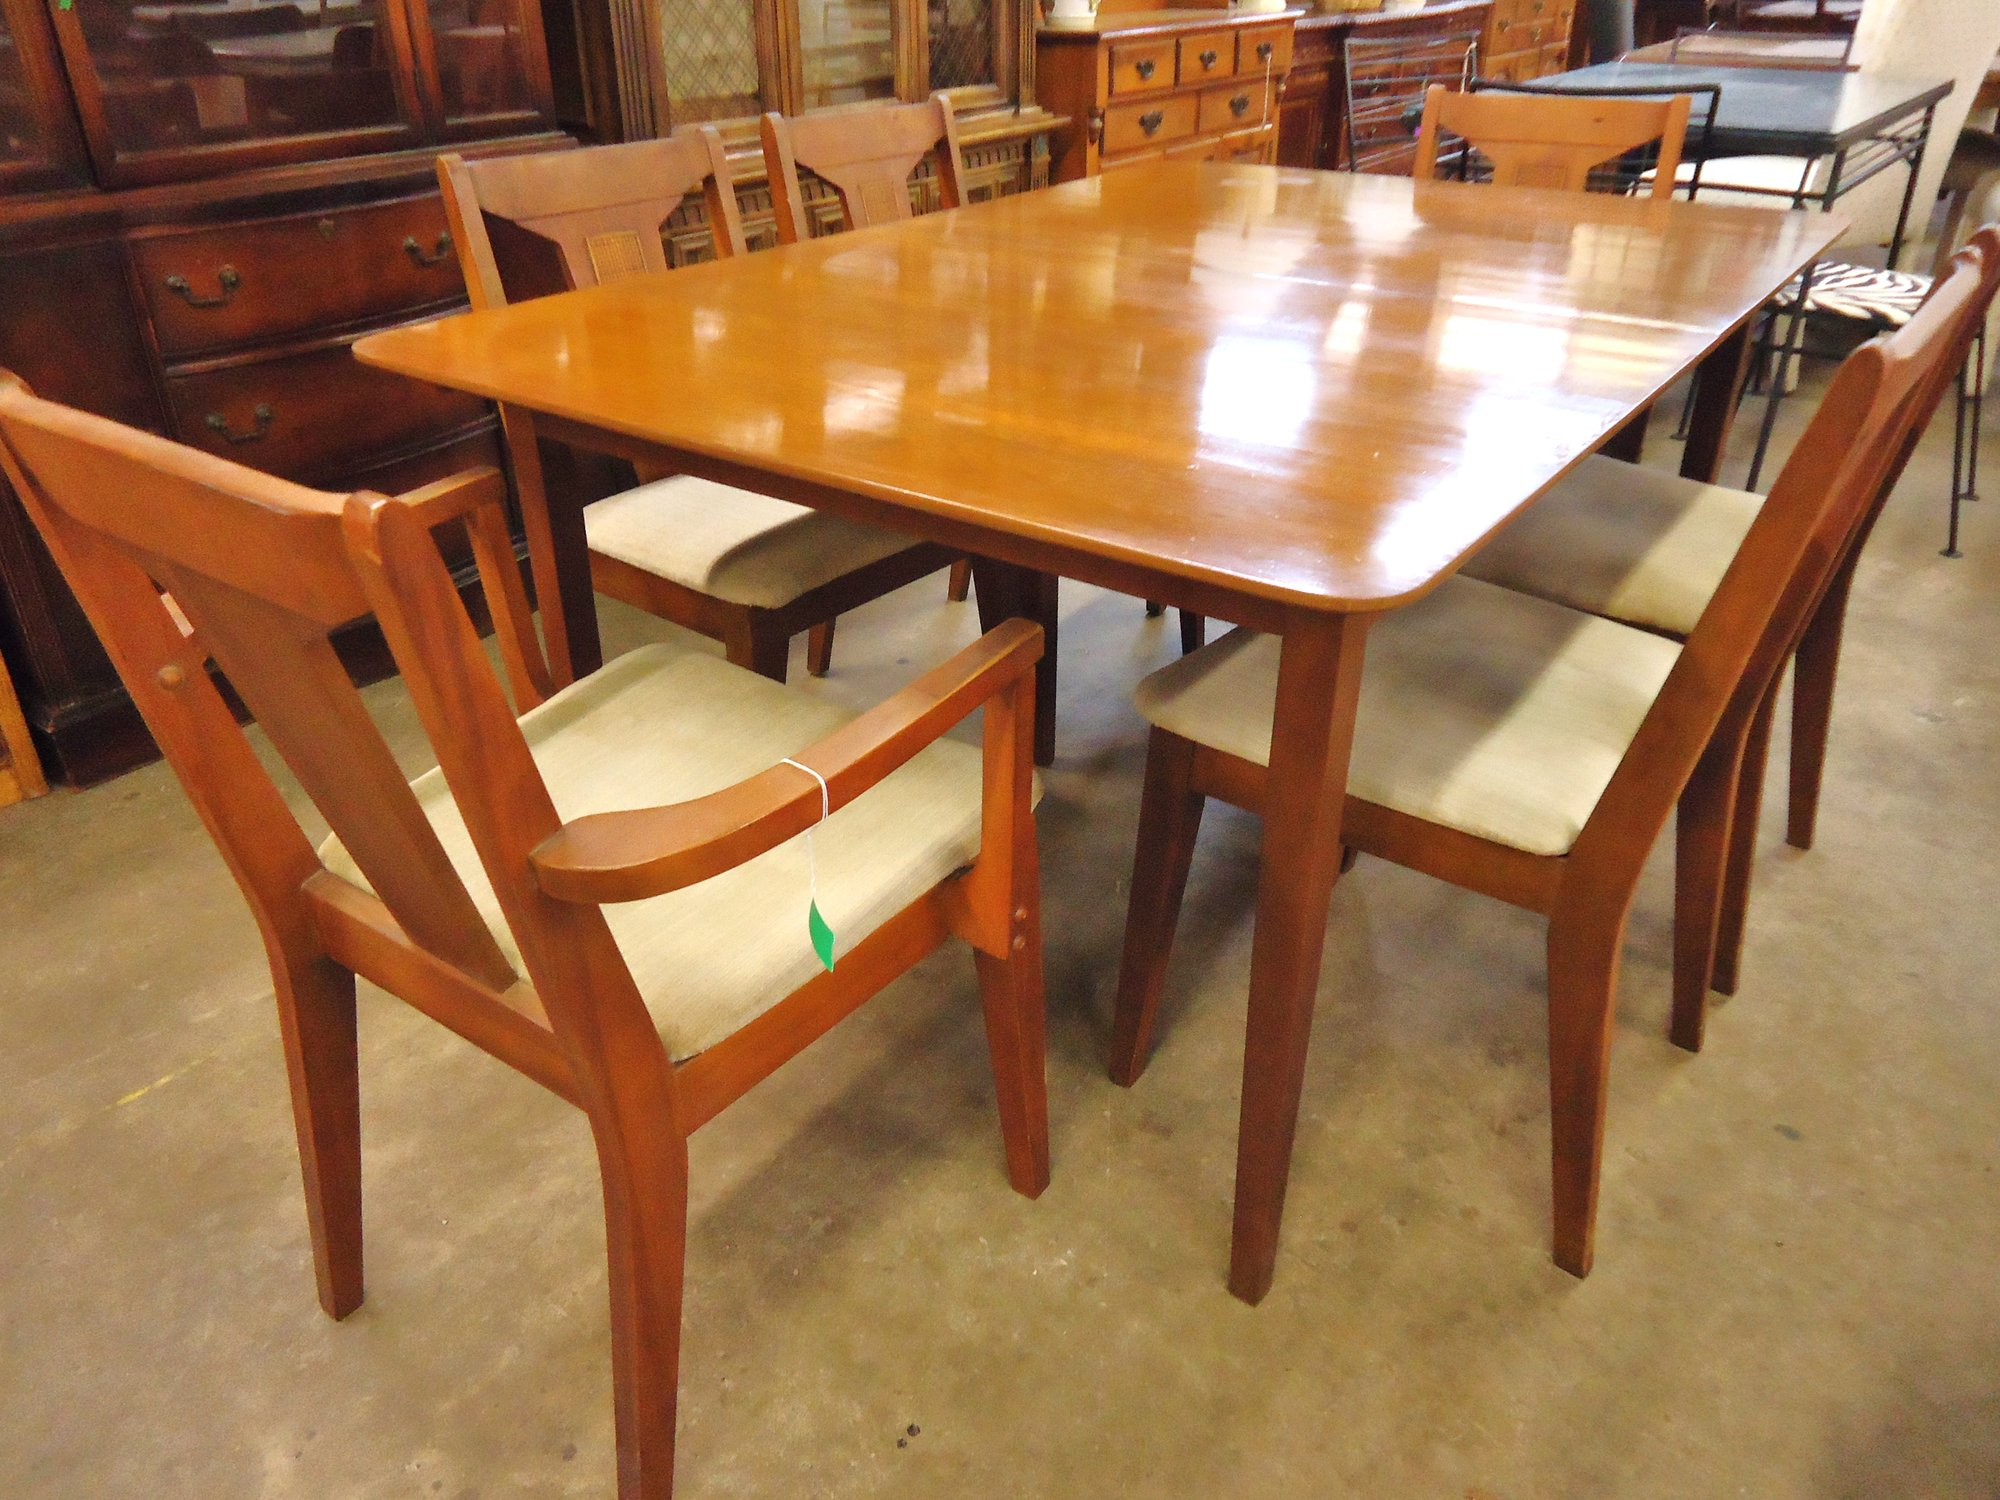 Hidden Kitchen Table 1 14760 Mid Century Dining Room Table With 6 Chairs And 1